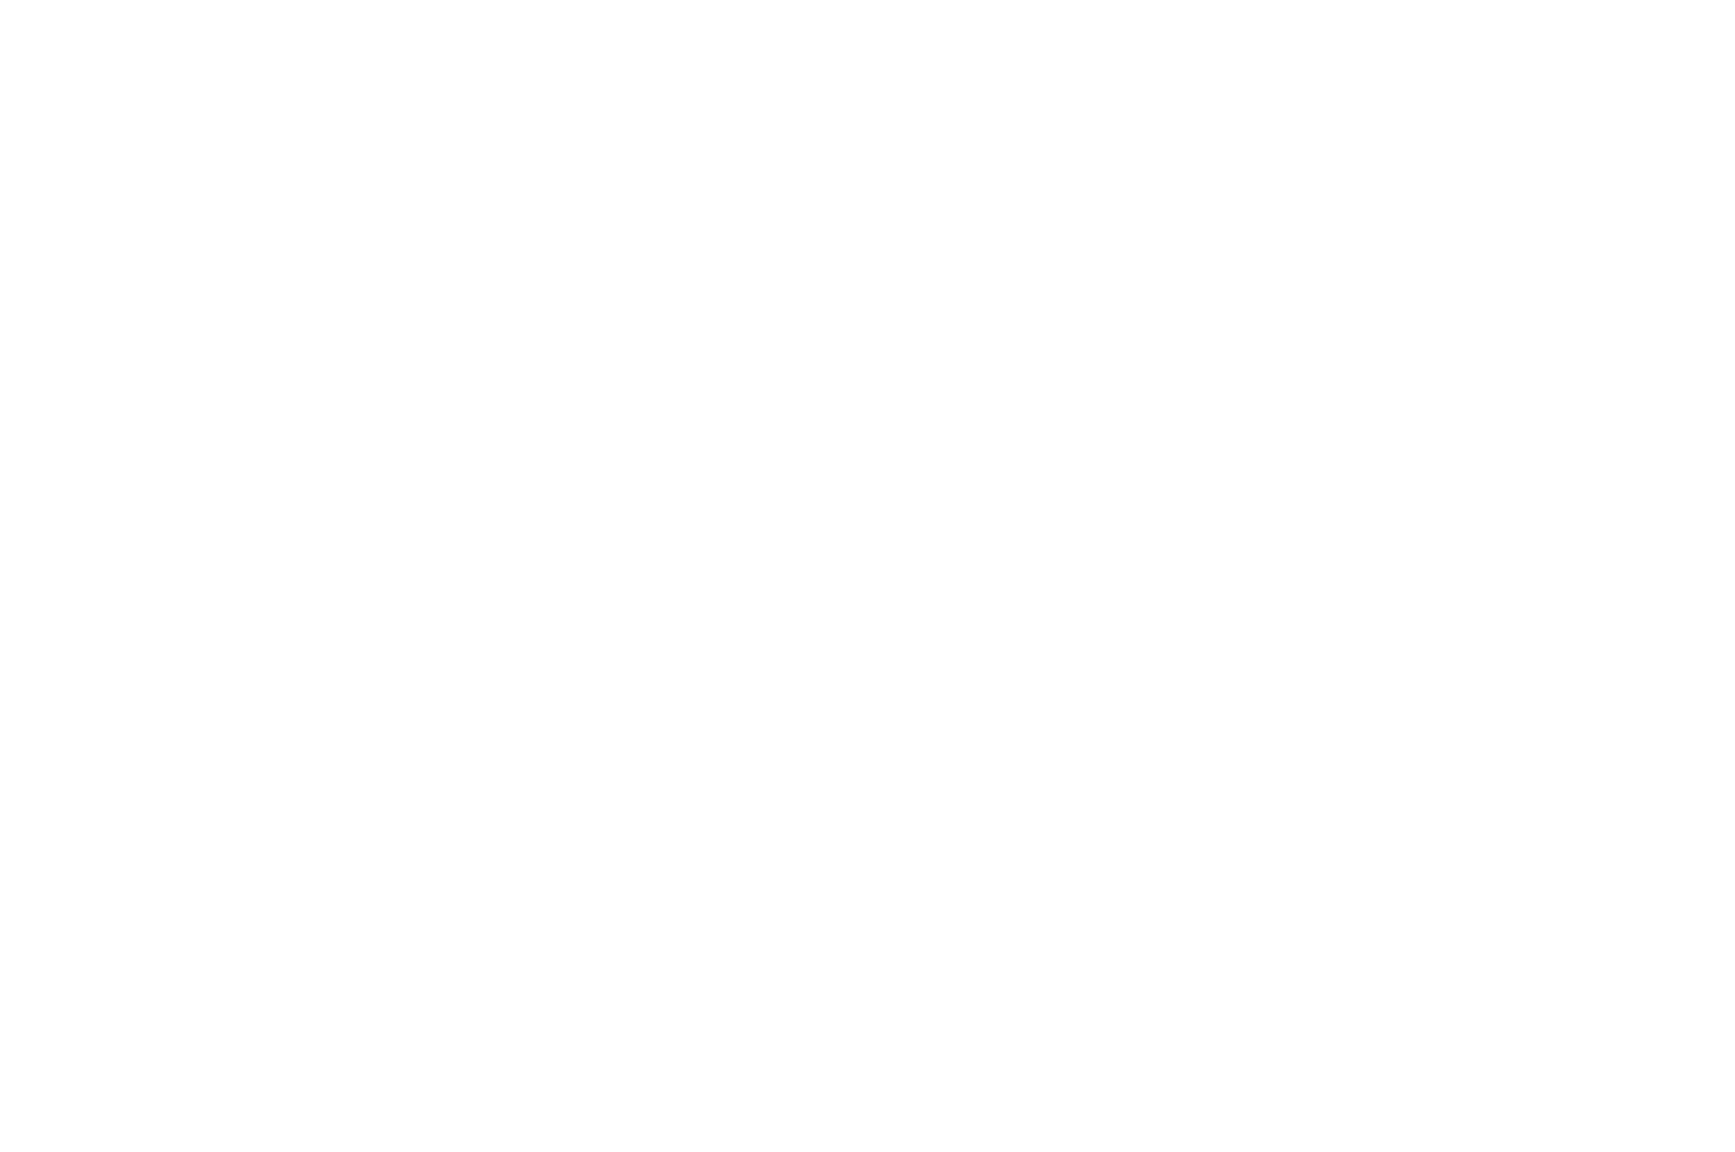 OFFICIAL SELECTION - Mill Valley Film Festival - 2019 (1).png